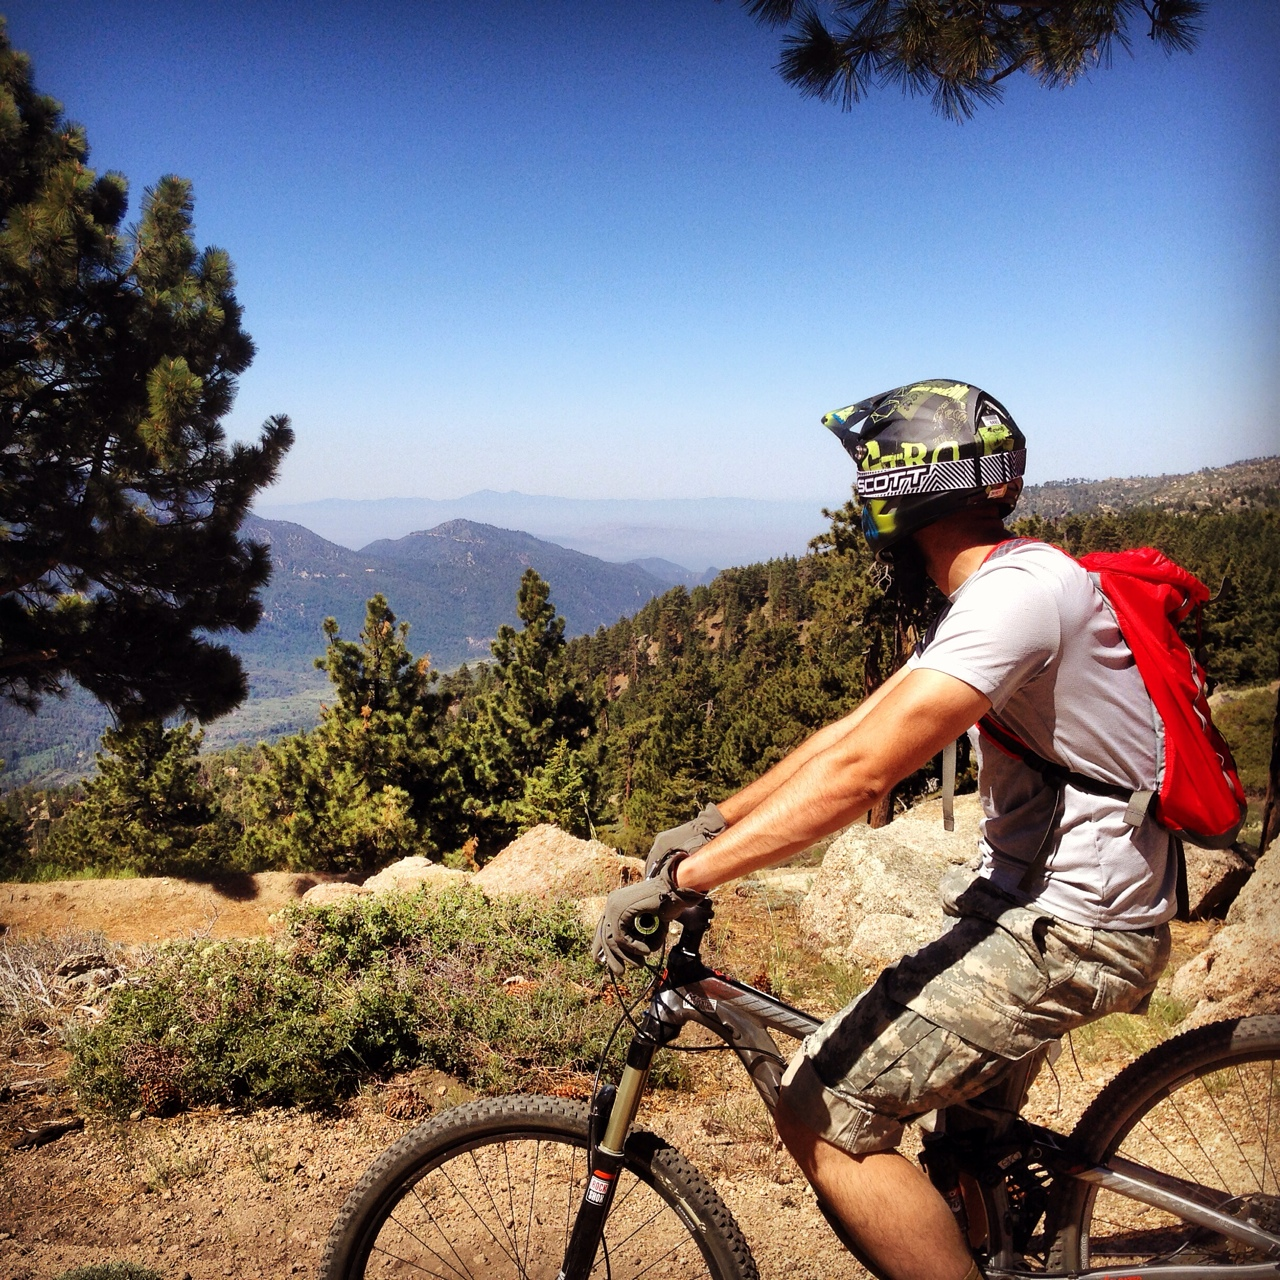 Spent all day MT biking around Big Bear, CA. Cross country and down hill. Damn Im smoked! (That's me!)